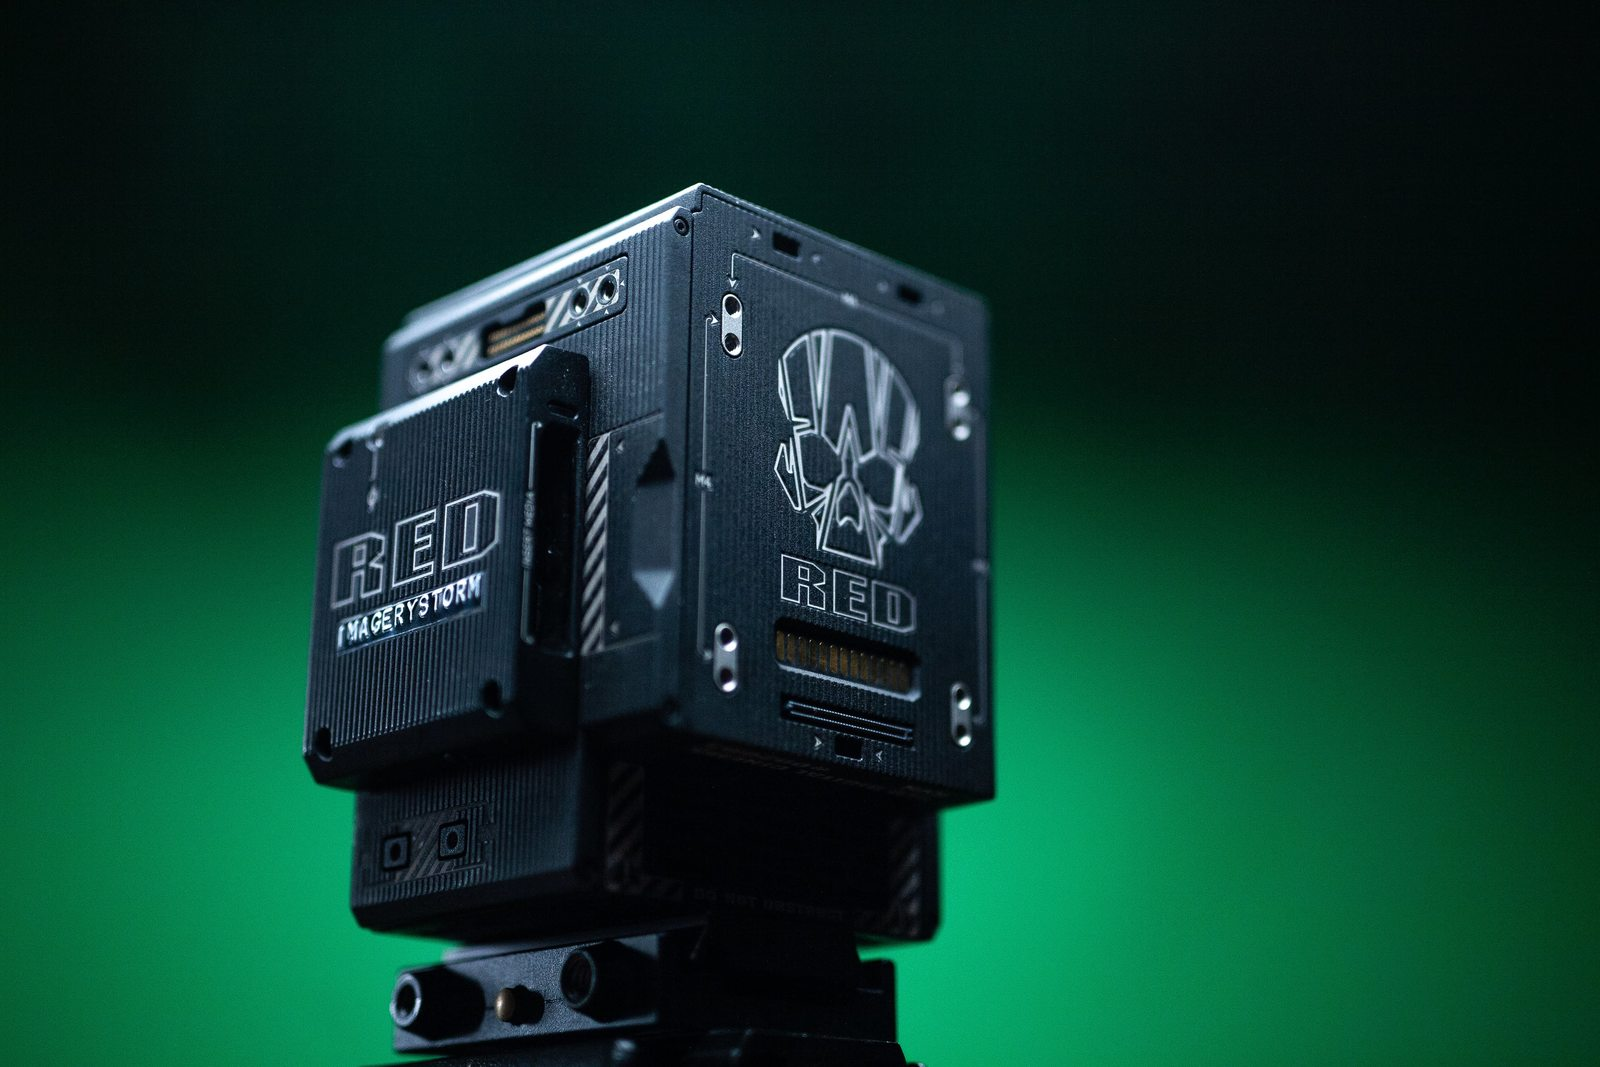 Red Raven Specs Rent A Red Raven Dragon 4 5k Dsmc2 Brain Only Best Prices Sharegrid Atlanta